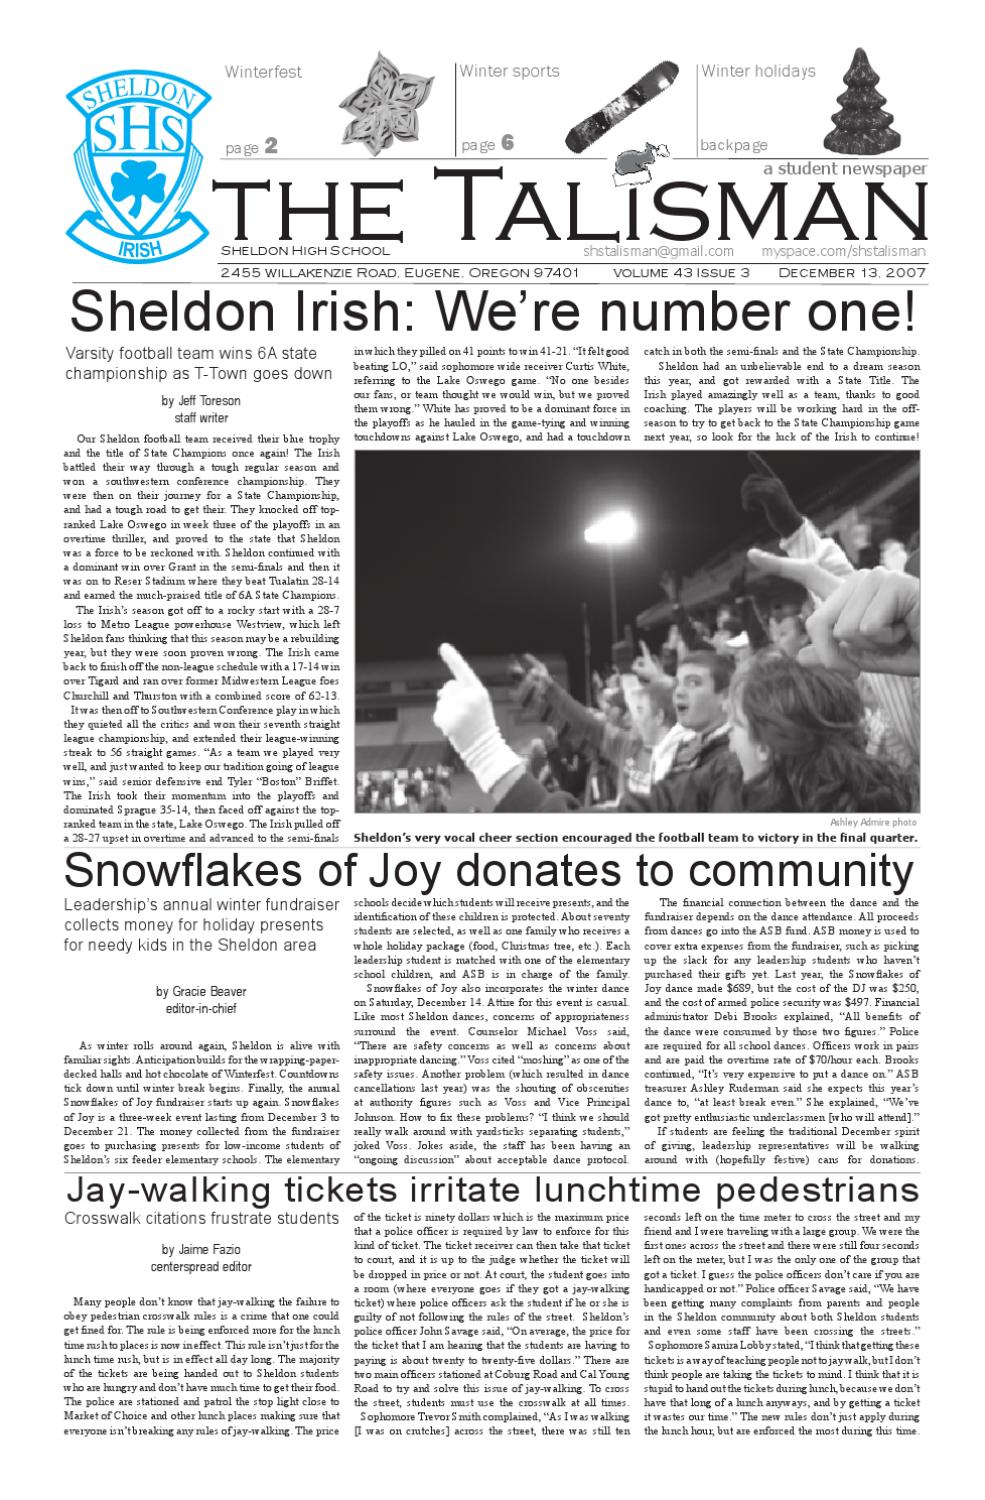 Volume 43 Issue 3-December 13, 2007 by The Talisman - issuu